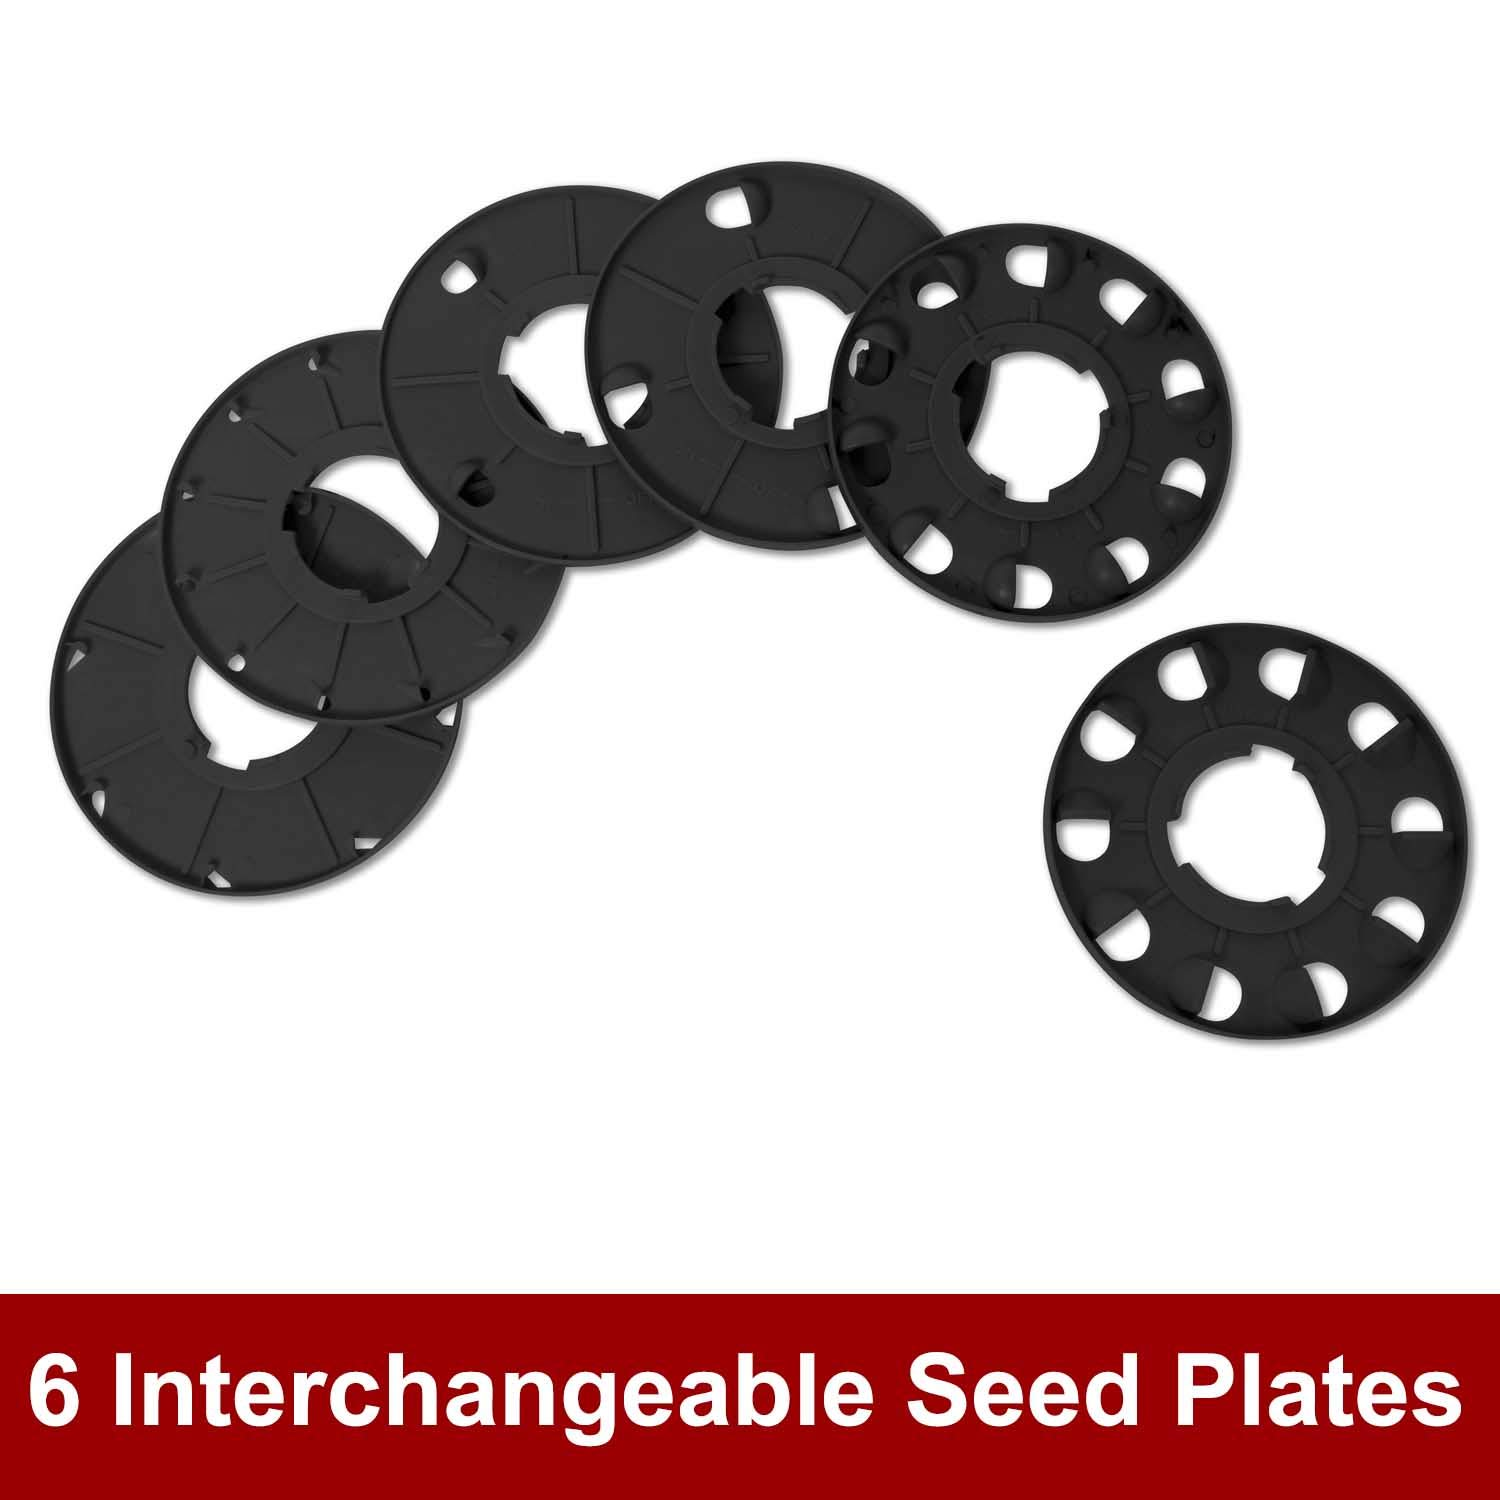 Chapin 8701B Garden Push seeder With 6 Seed Plates for Up to 20 Varieties Of Seeds, (1 Garden Seeder/Package) by Chapin International (Image #3)